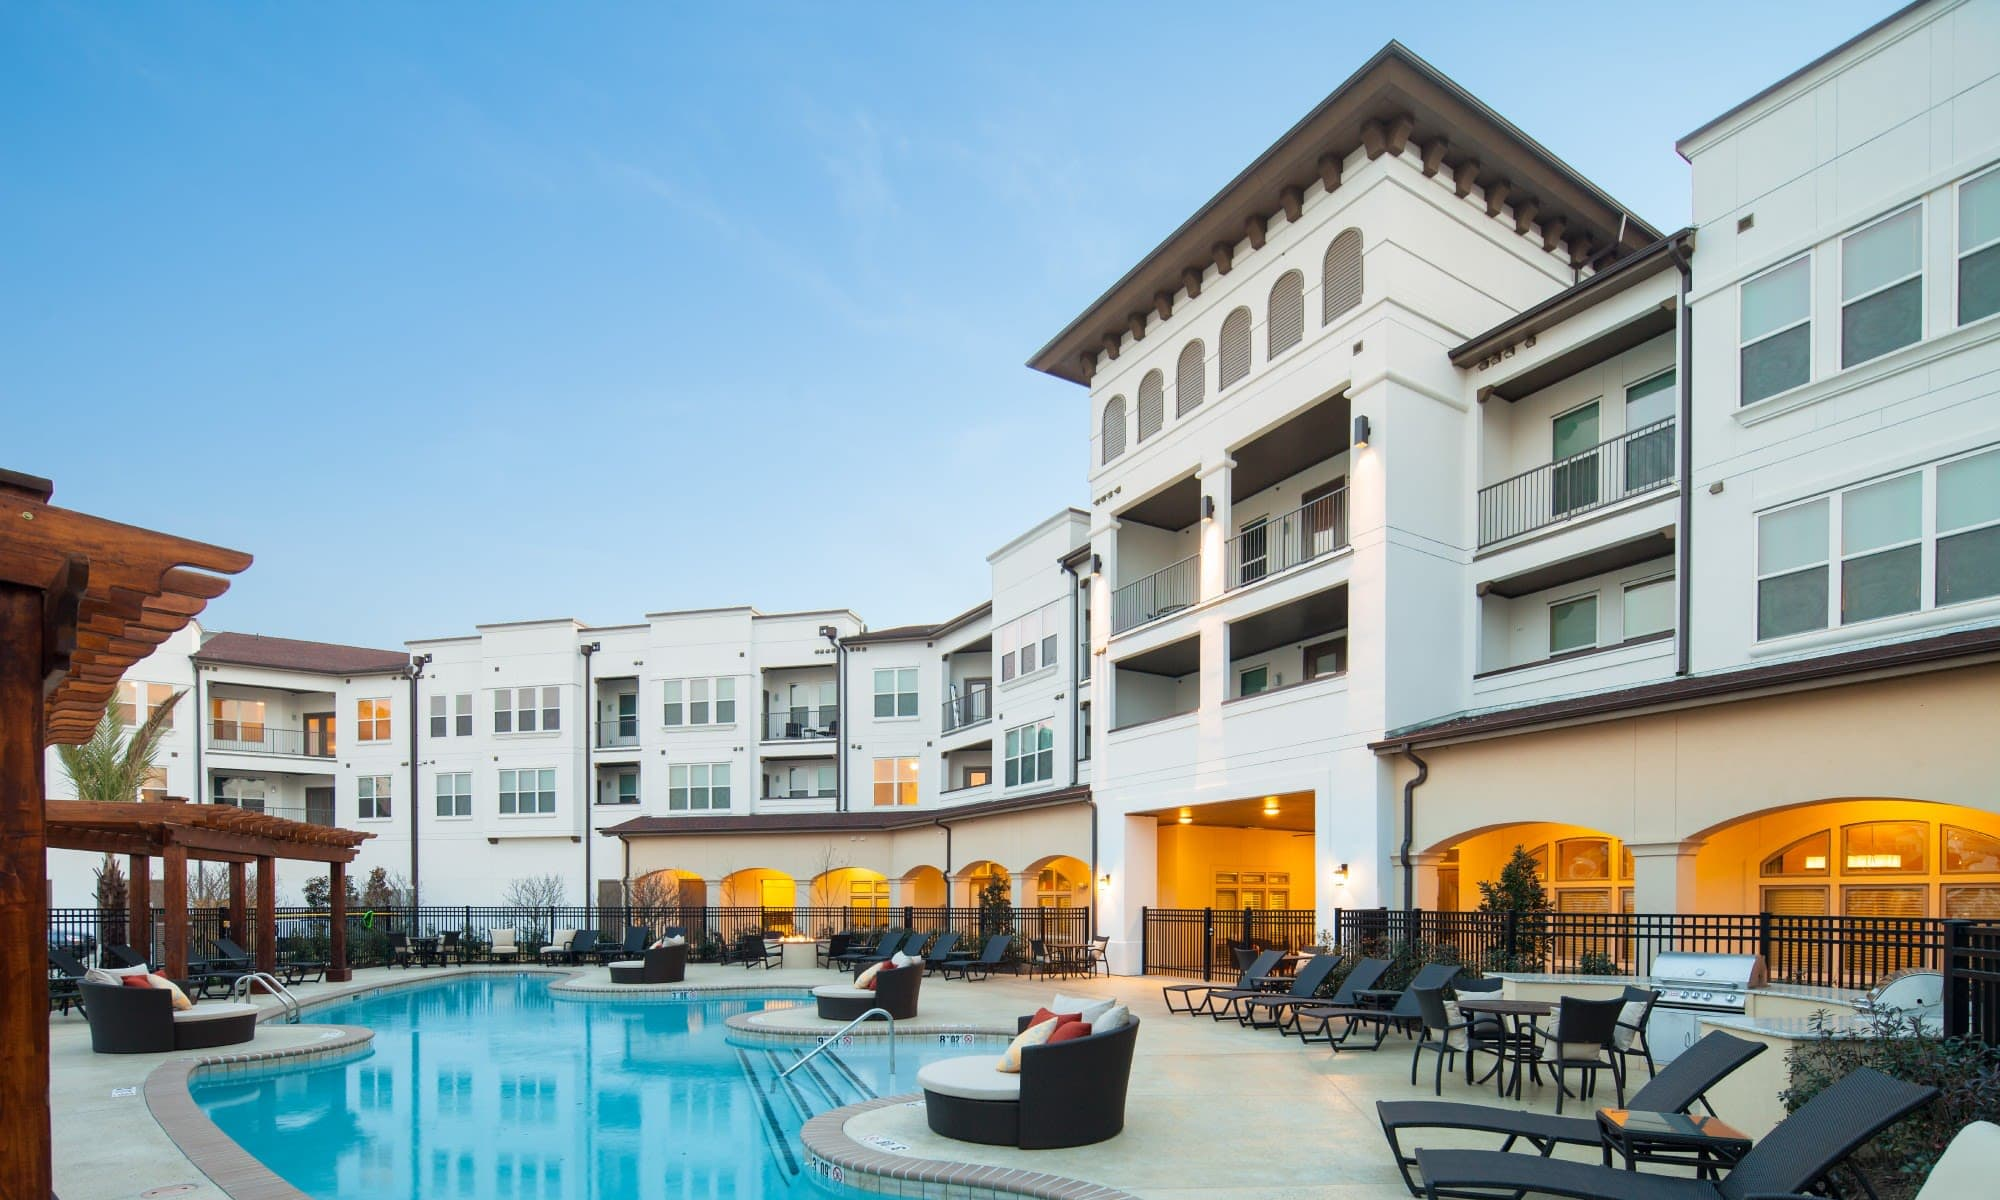 Apartments at The High Grove in Baton Rouge, Louisiana